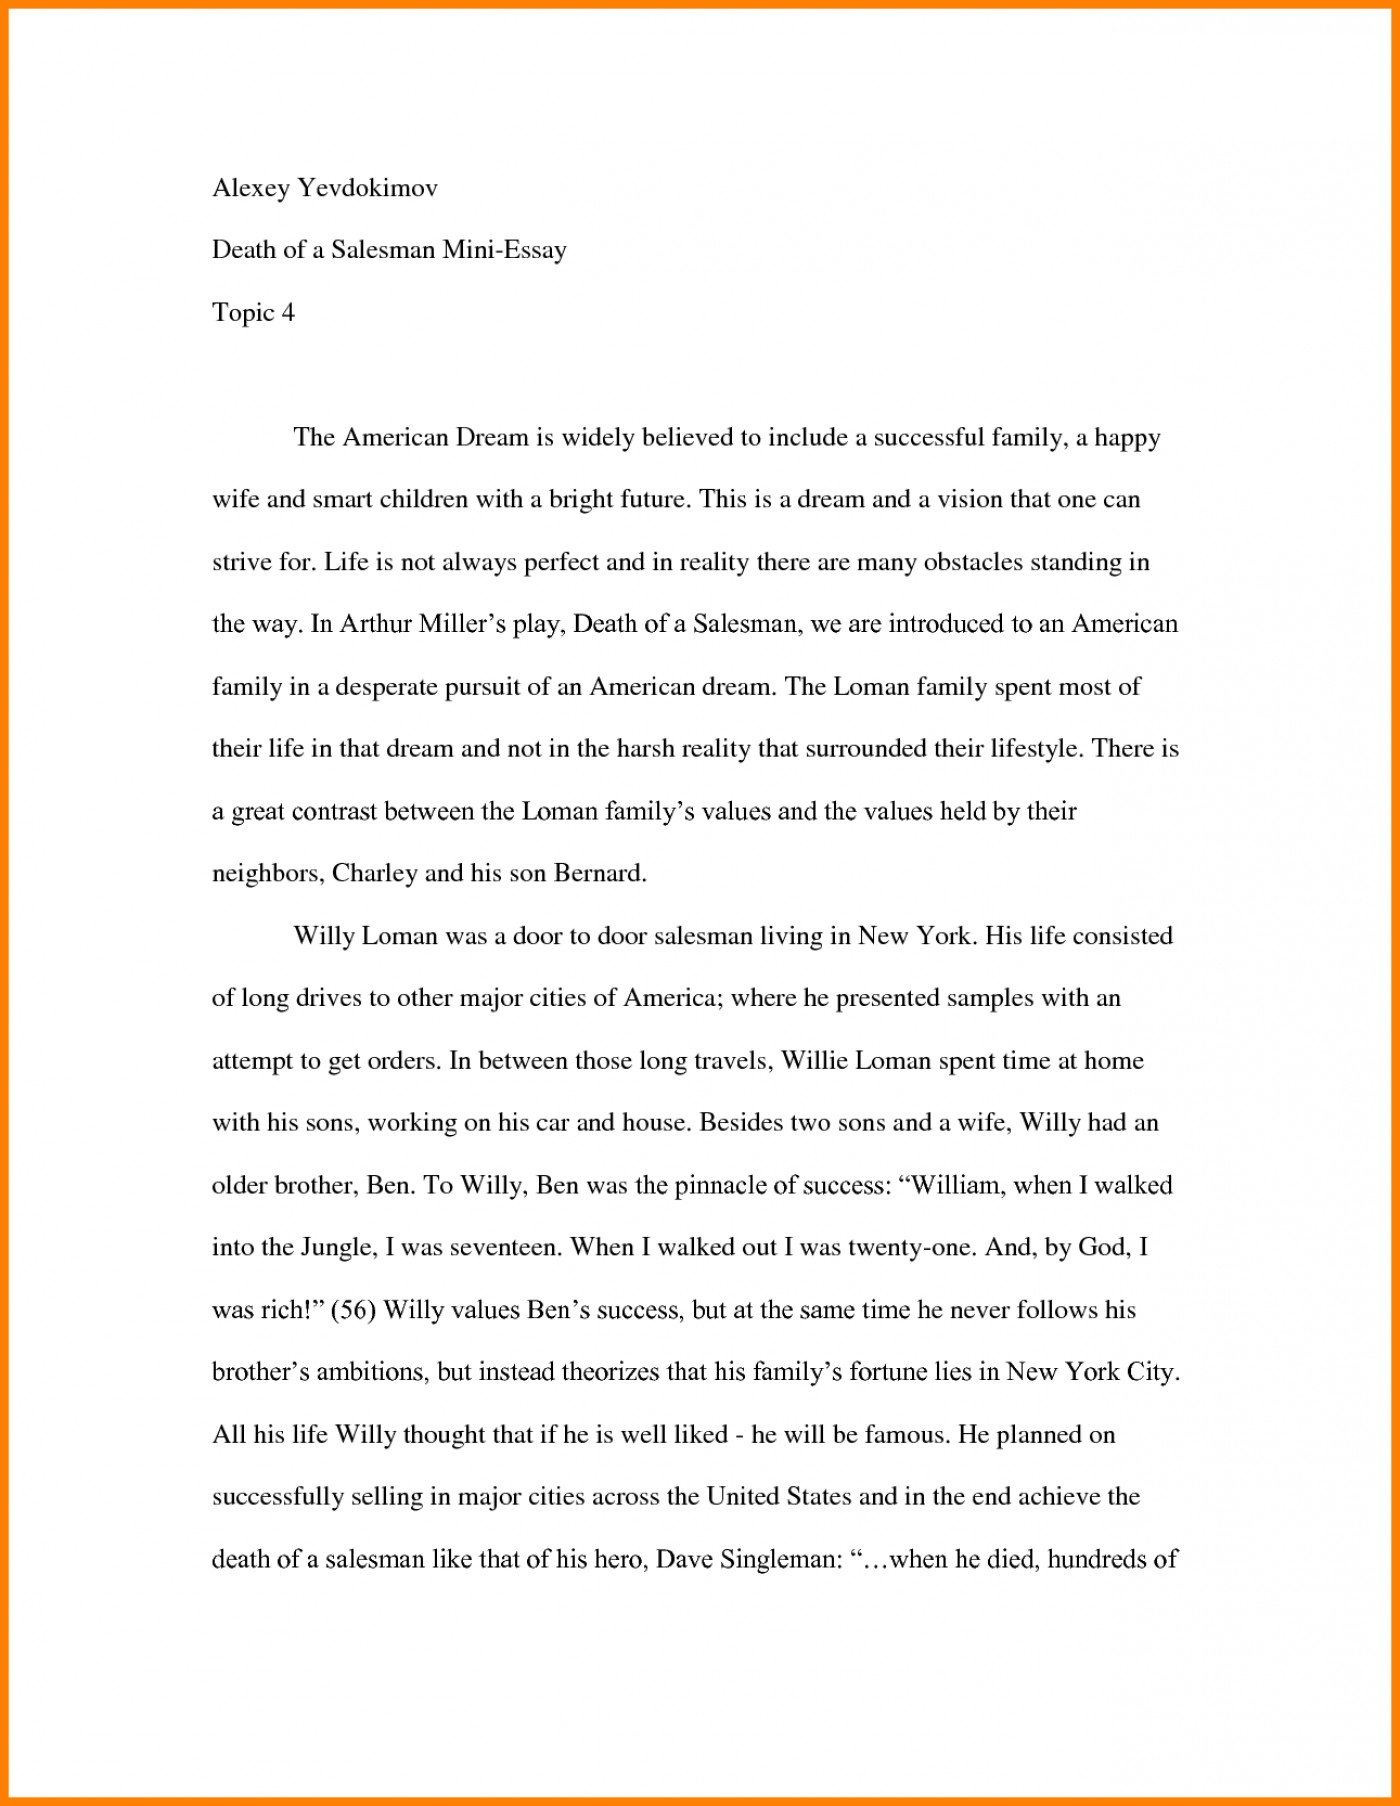 004 Essay Example How To Start Off An About Yourself Amazing With A Hook Quote Analysis On Book 1400